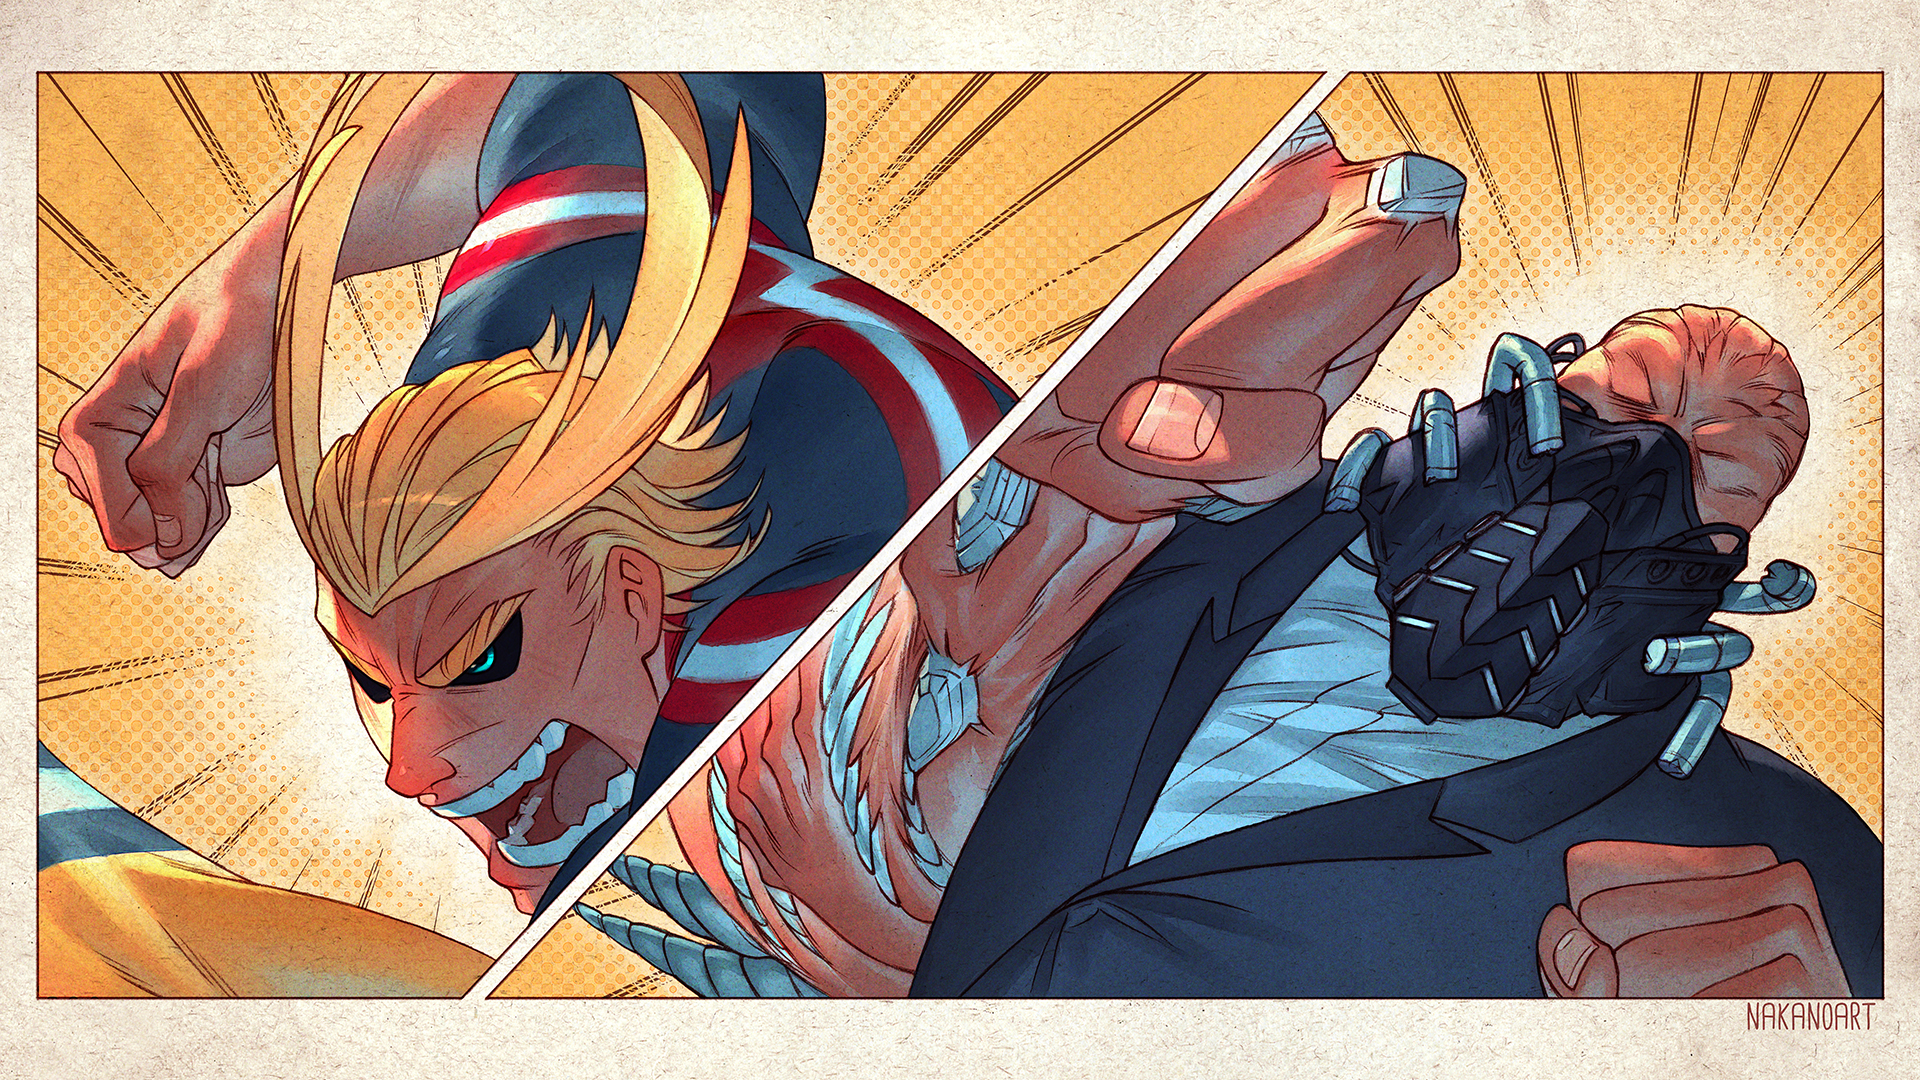 All Might Vs All For One By Nakanoart On Deviantart